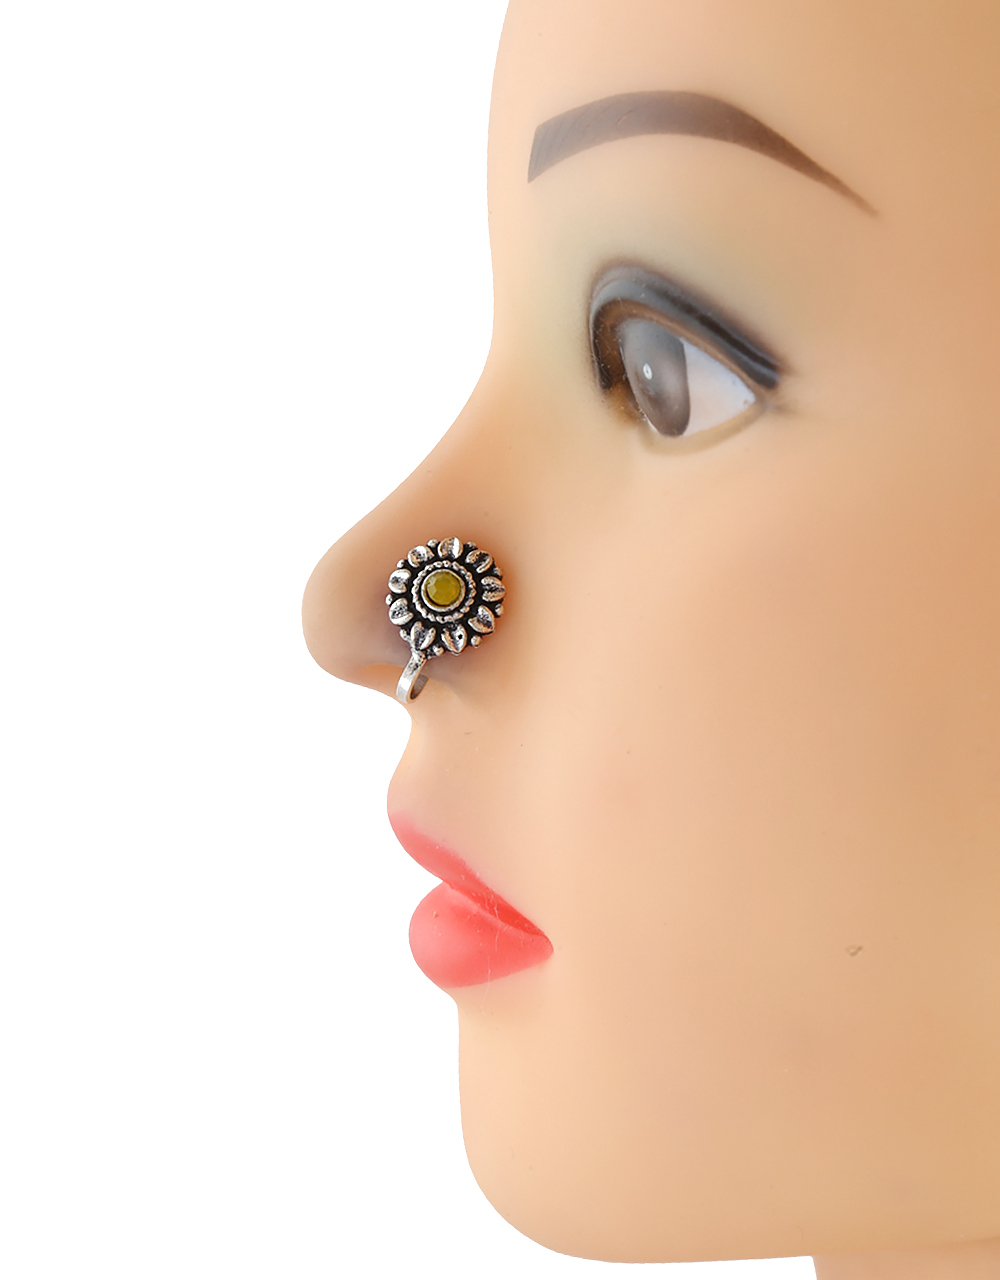 Floral Design Oxidised Finish Nose Pin Stud